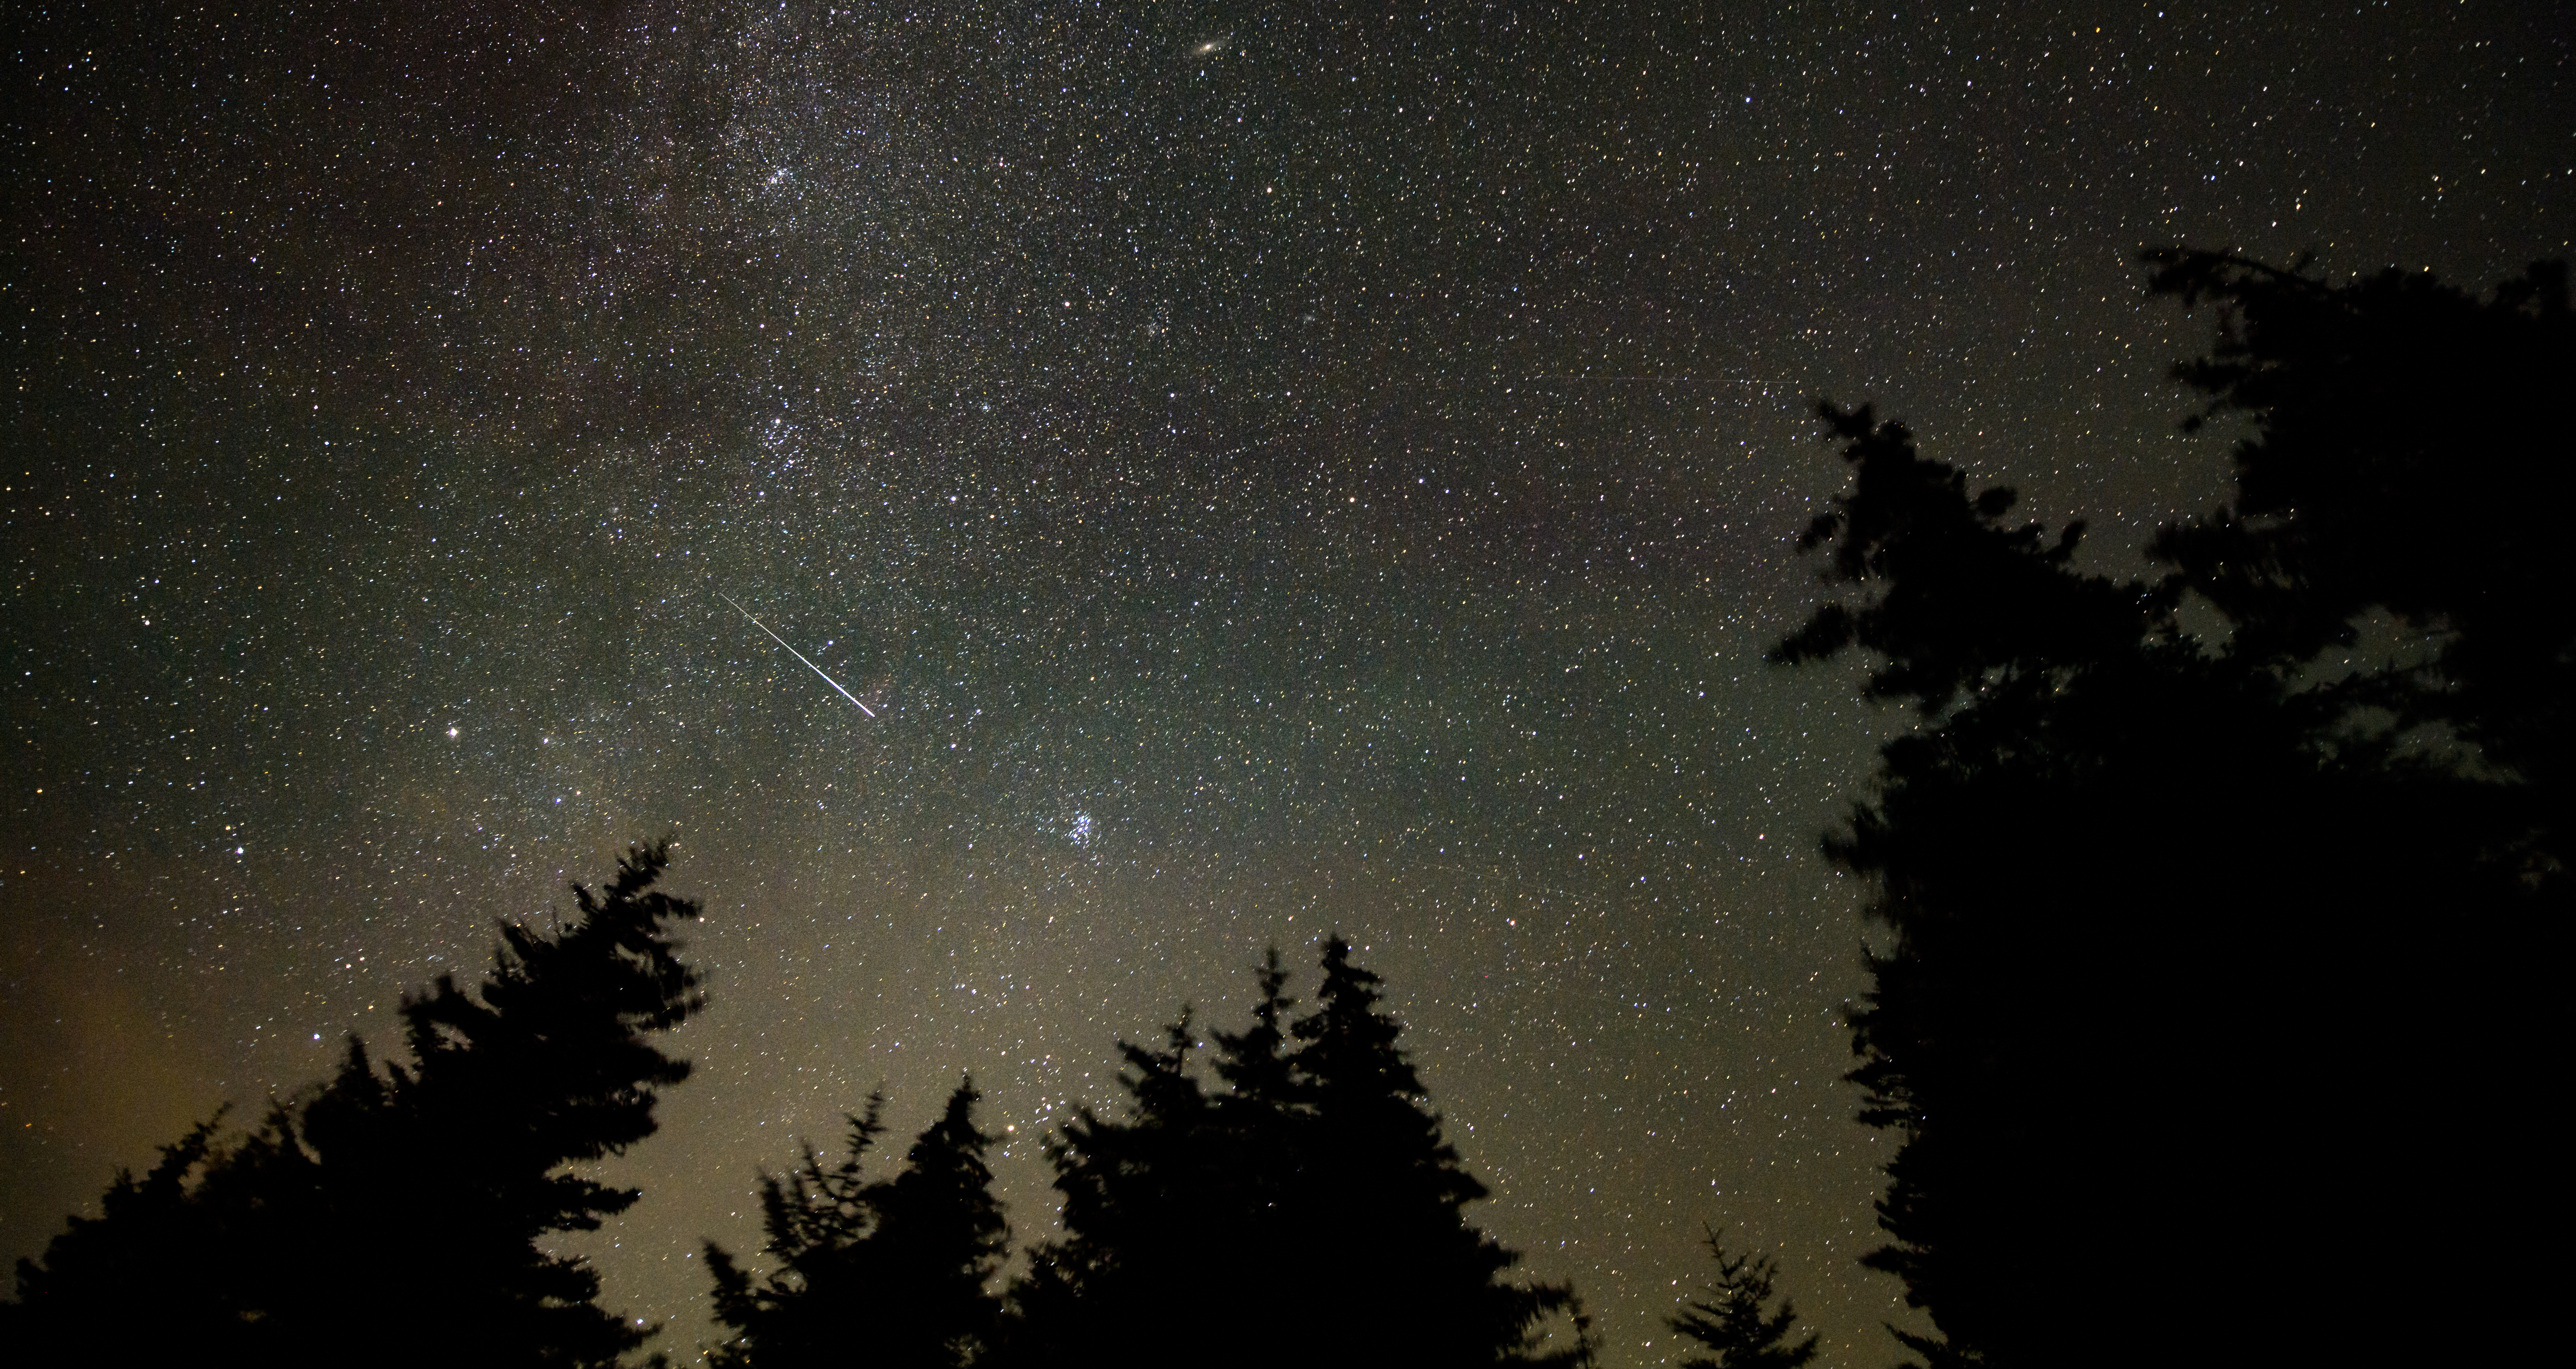 Behold! The Perseid Meteor Shower